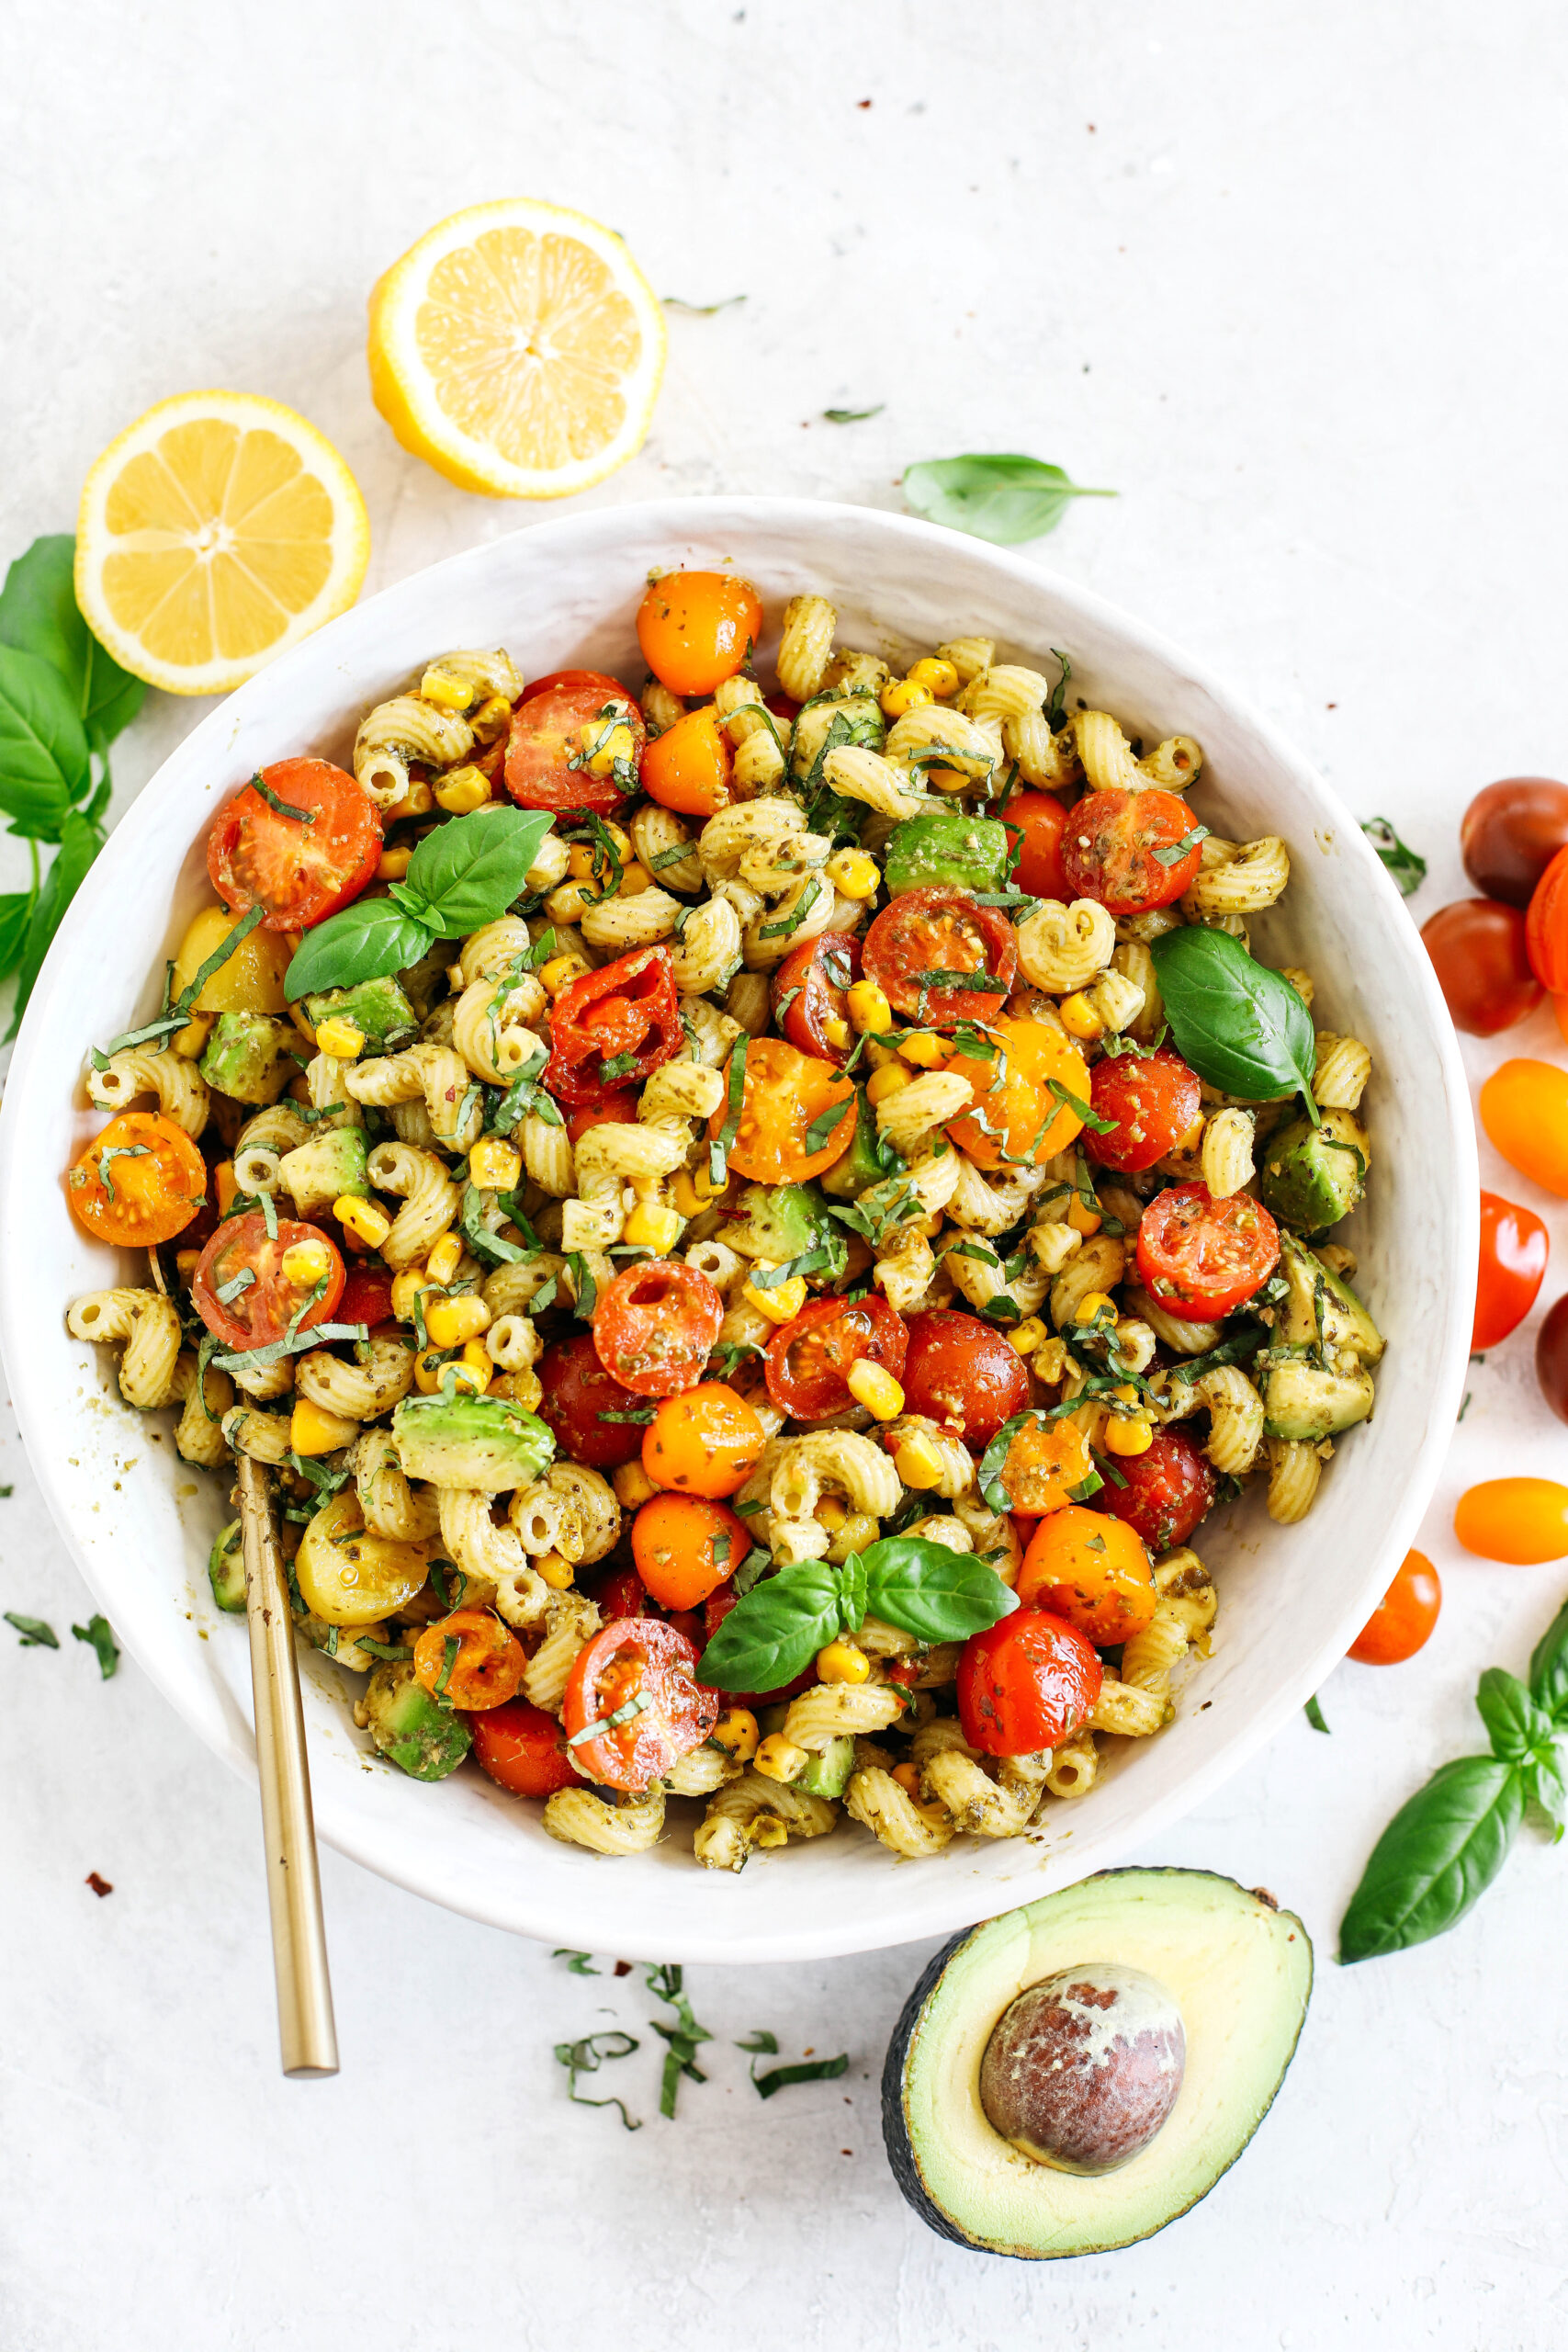 This EASY 10-minute Summer Pesto Pasta Salad is loaded with fresh ingredients like juicy tomatoes, corn, avocado, garlic, and lemon zest, all tossed together with warm pasta and delicious basil pesto!